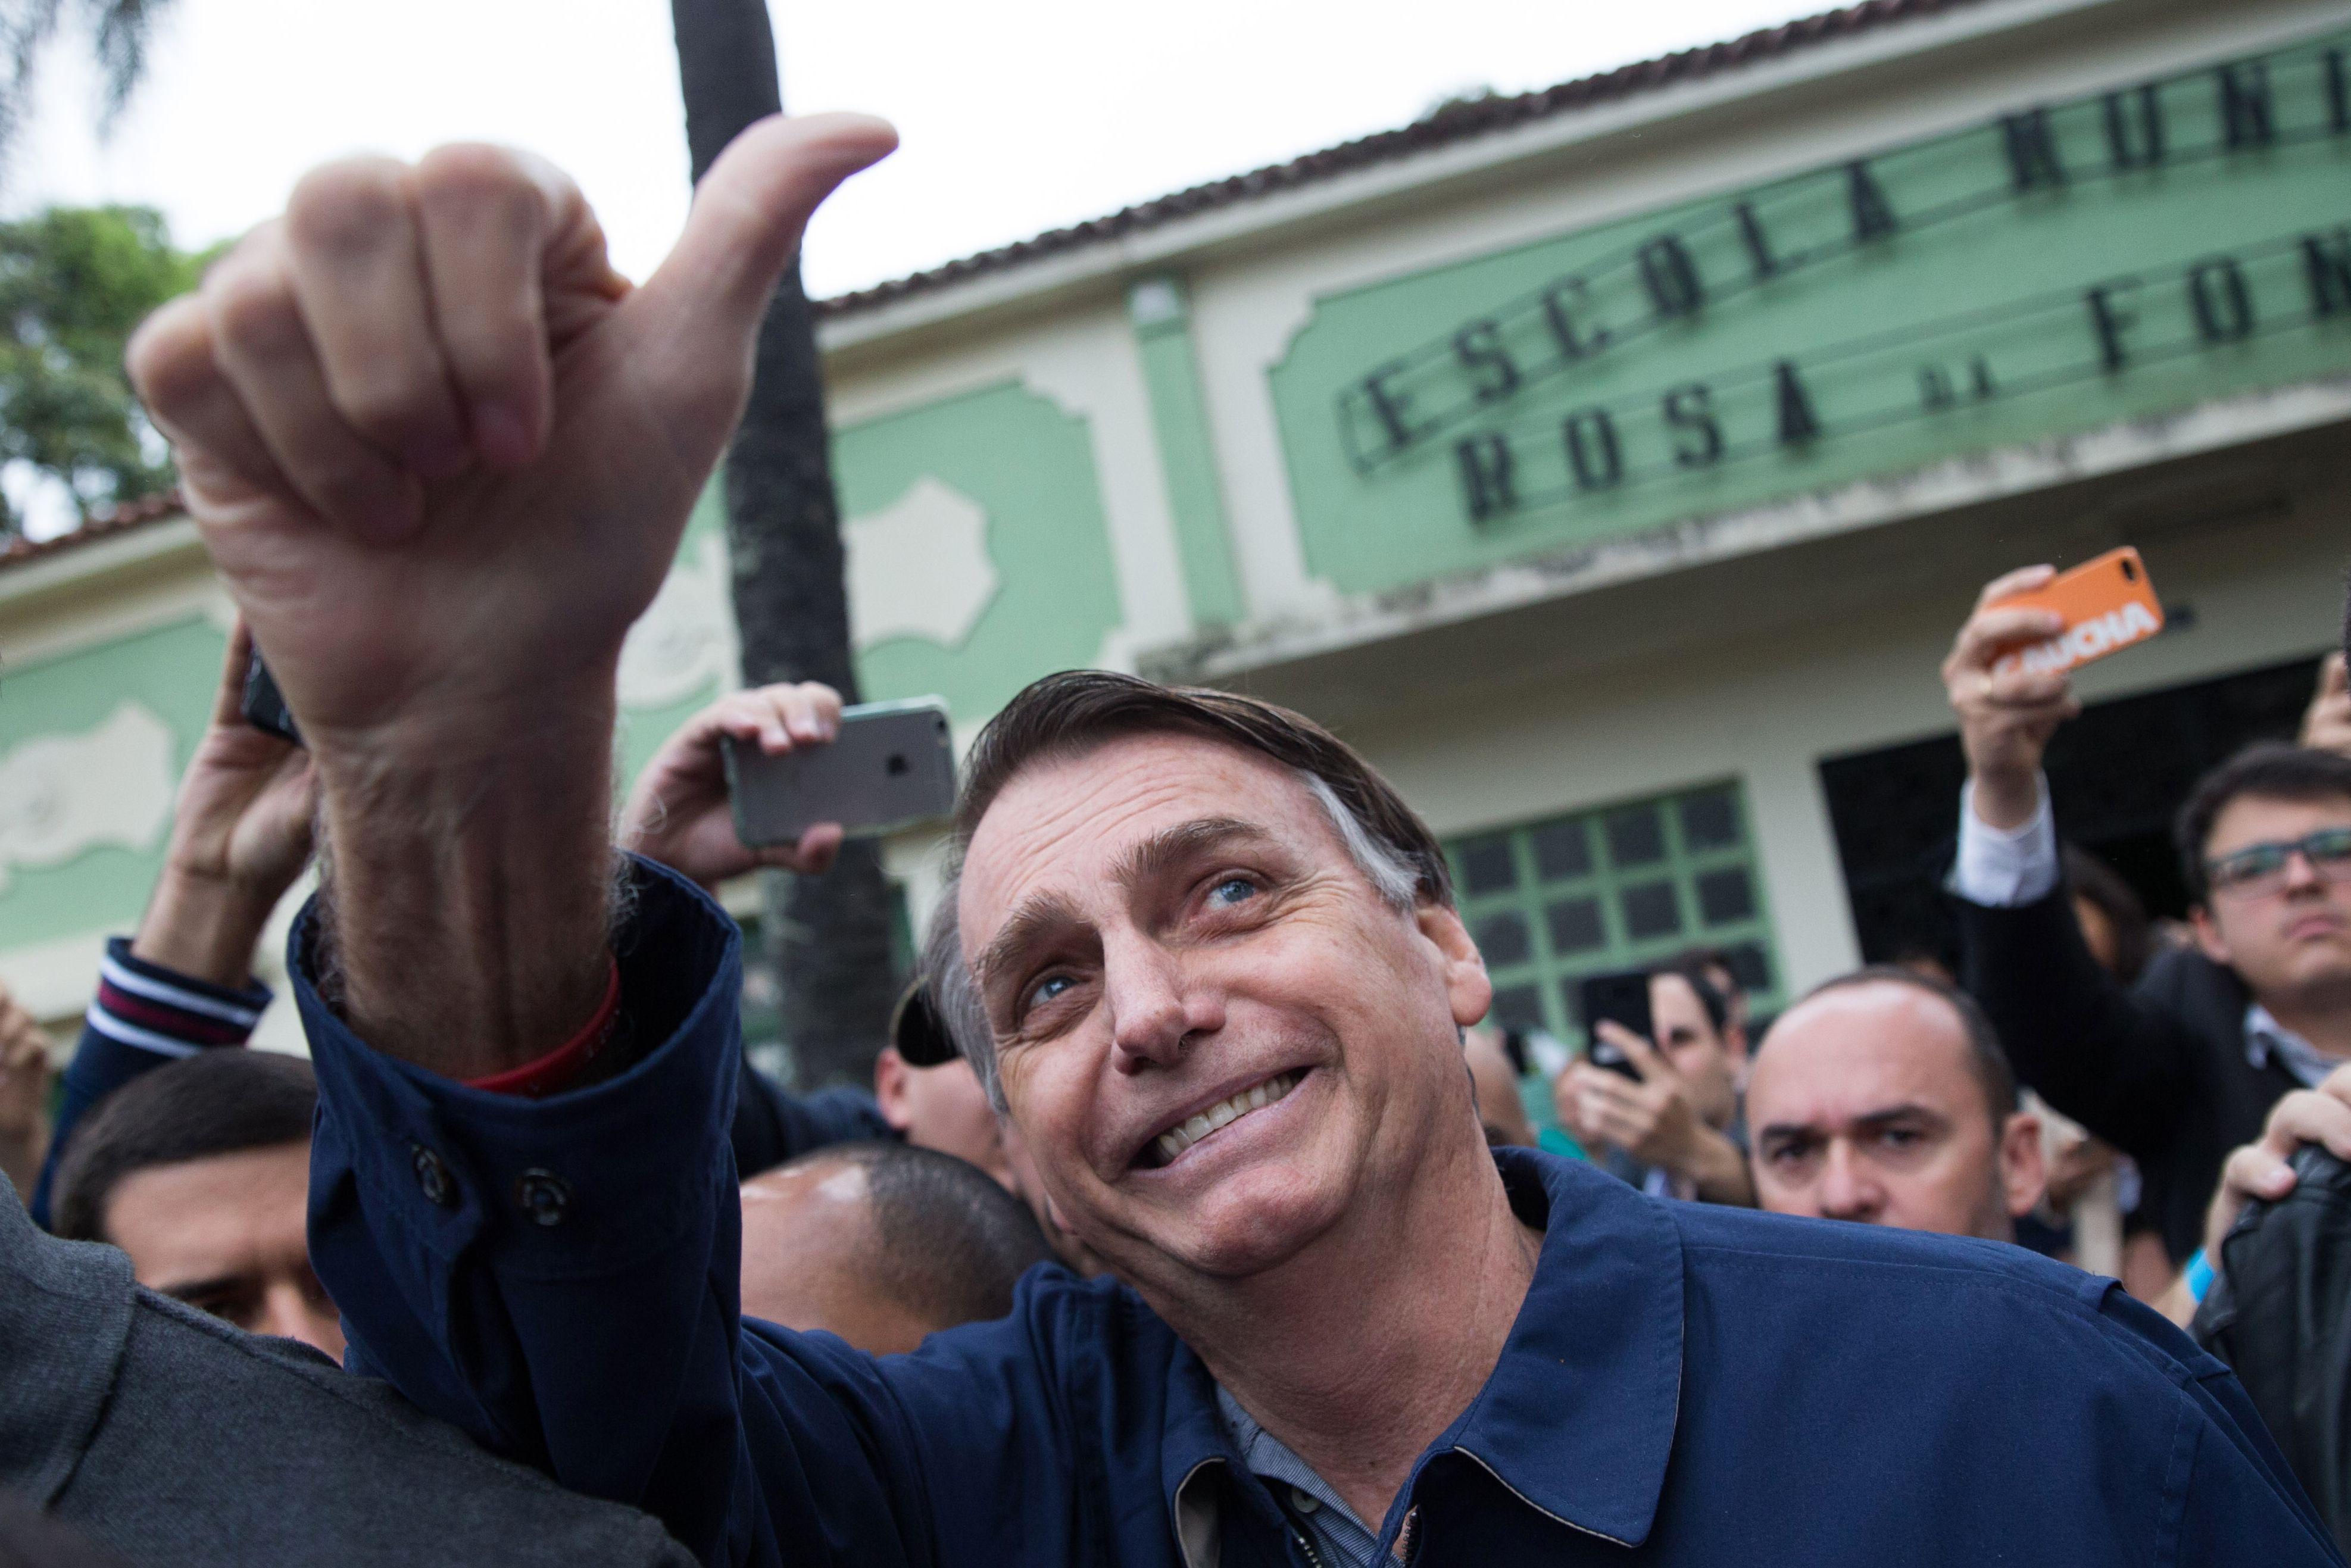 Brazil's right-wing presidential candidate for the Social Liberal Party (PSL) Jair Bolsonaro gives his thumbs up after casting his vote at Villa Militar, during general elections, in Rio de Janeiro, Brazil, on Oct. 7, 2018.